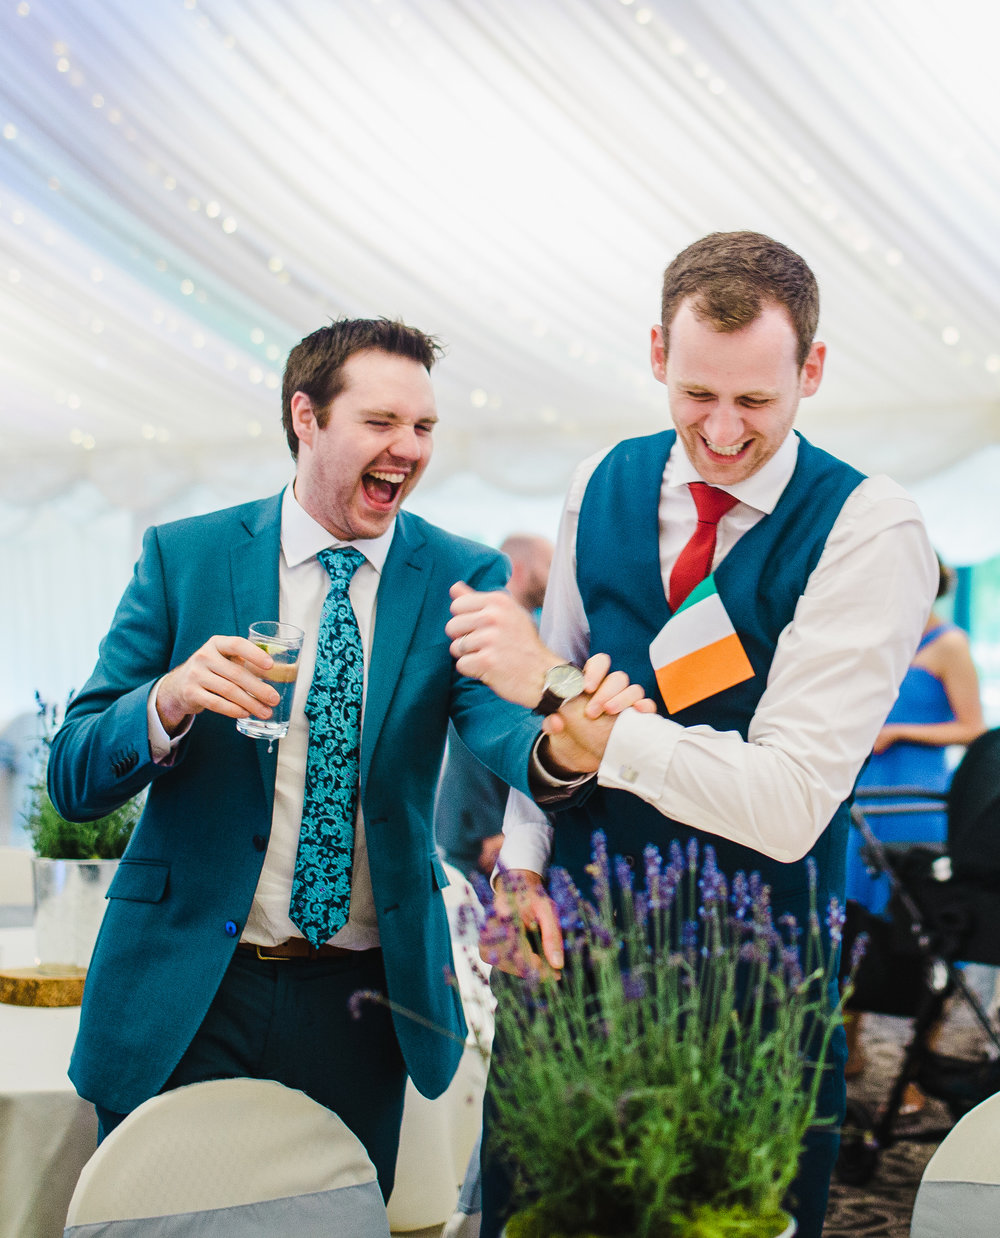 Laughter from the wedding guest for the Lake District wedding